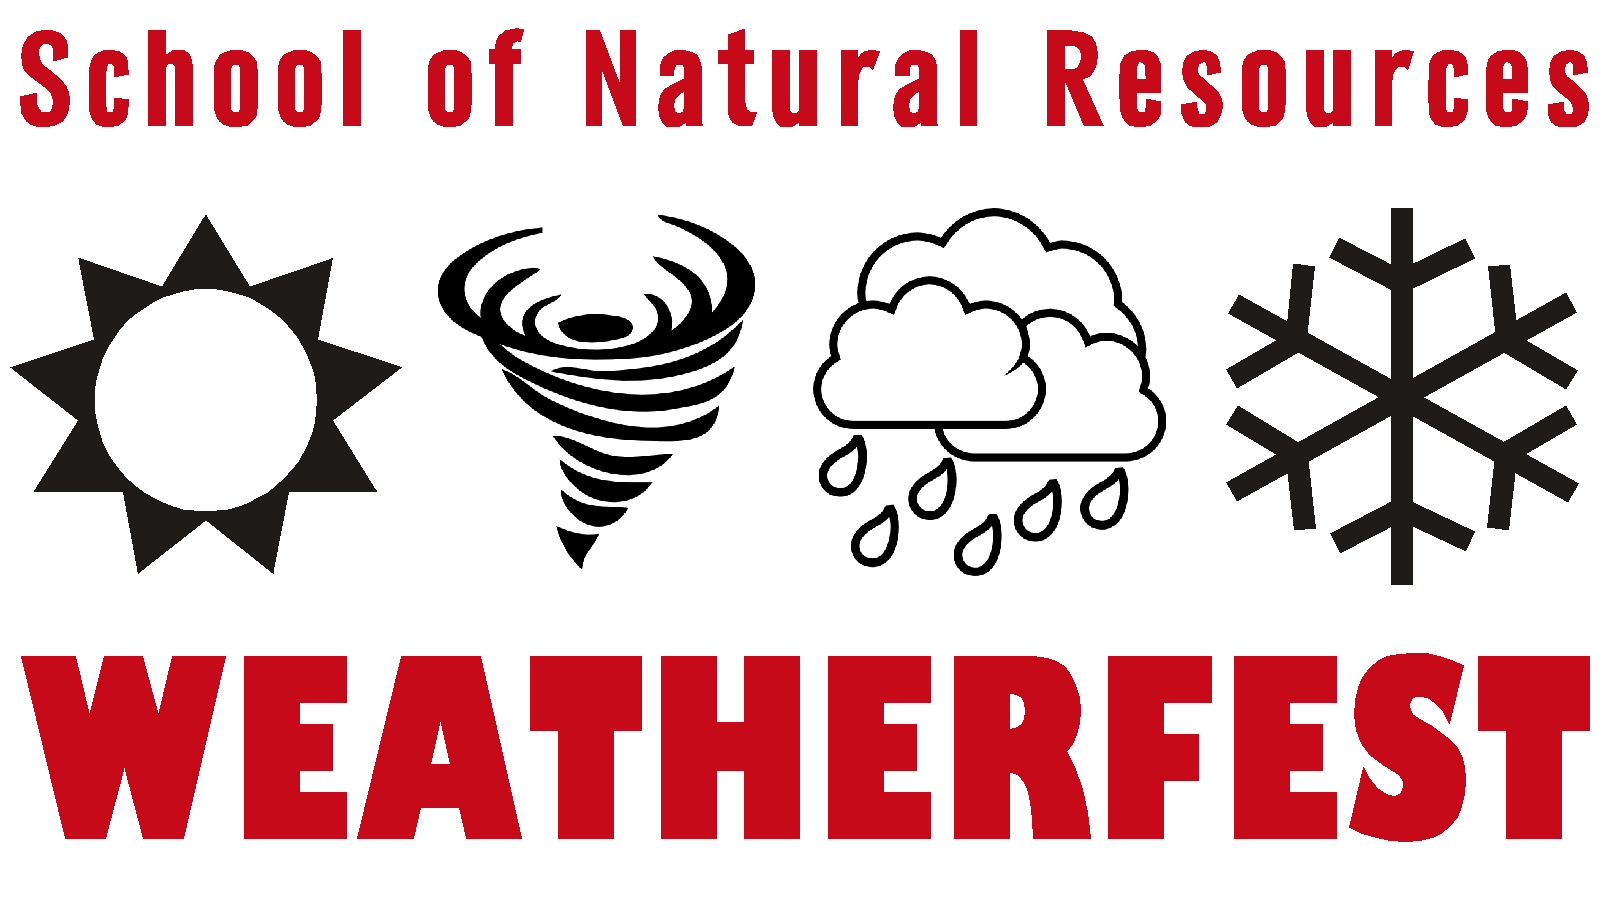 UNL's 15th Annual Family Weatherfest and Severe Weather Symposium has been accepted into the statewide Nebraska Science Festival, which takes place April 10-18.